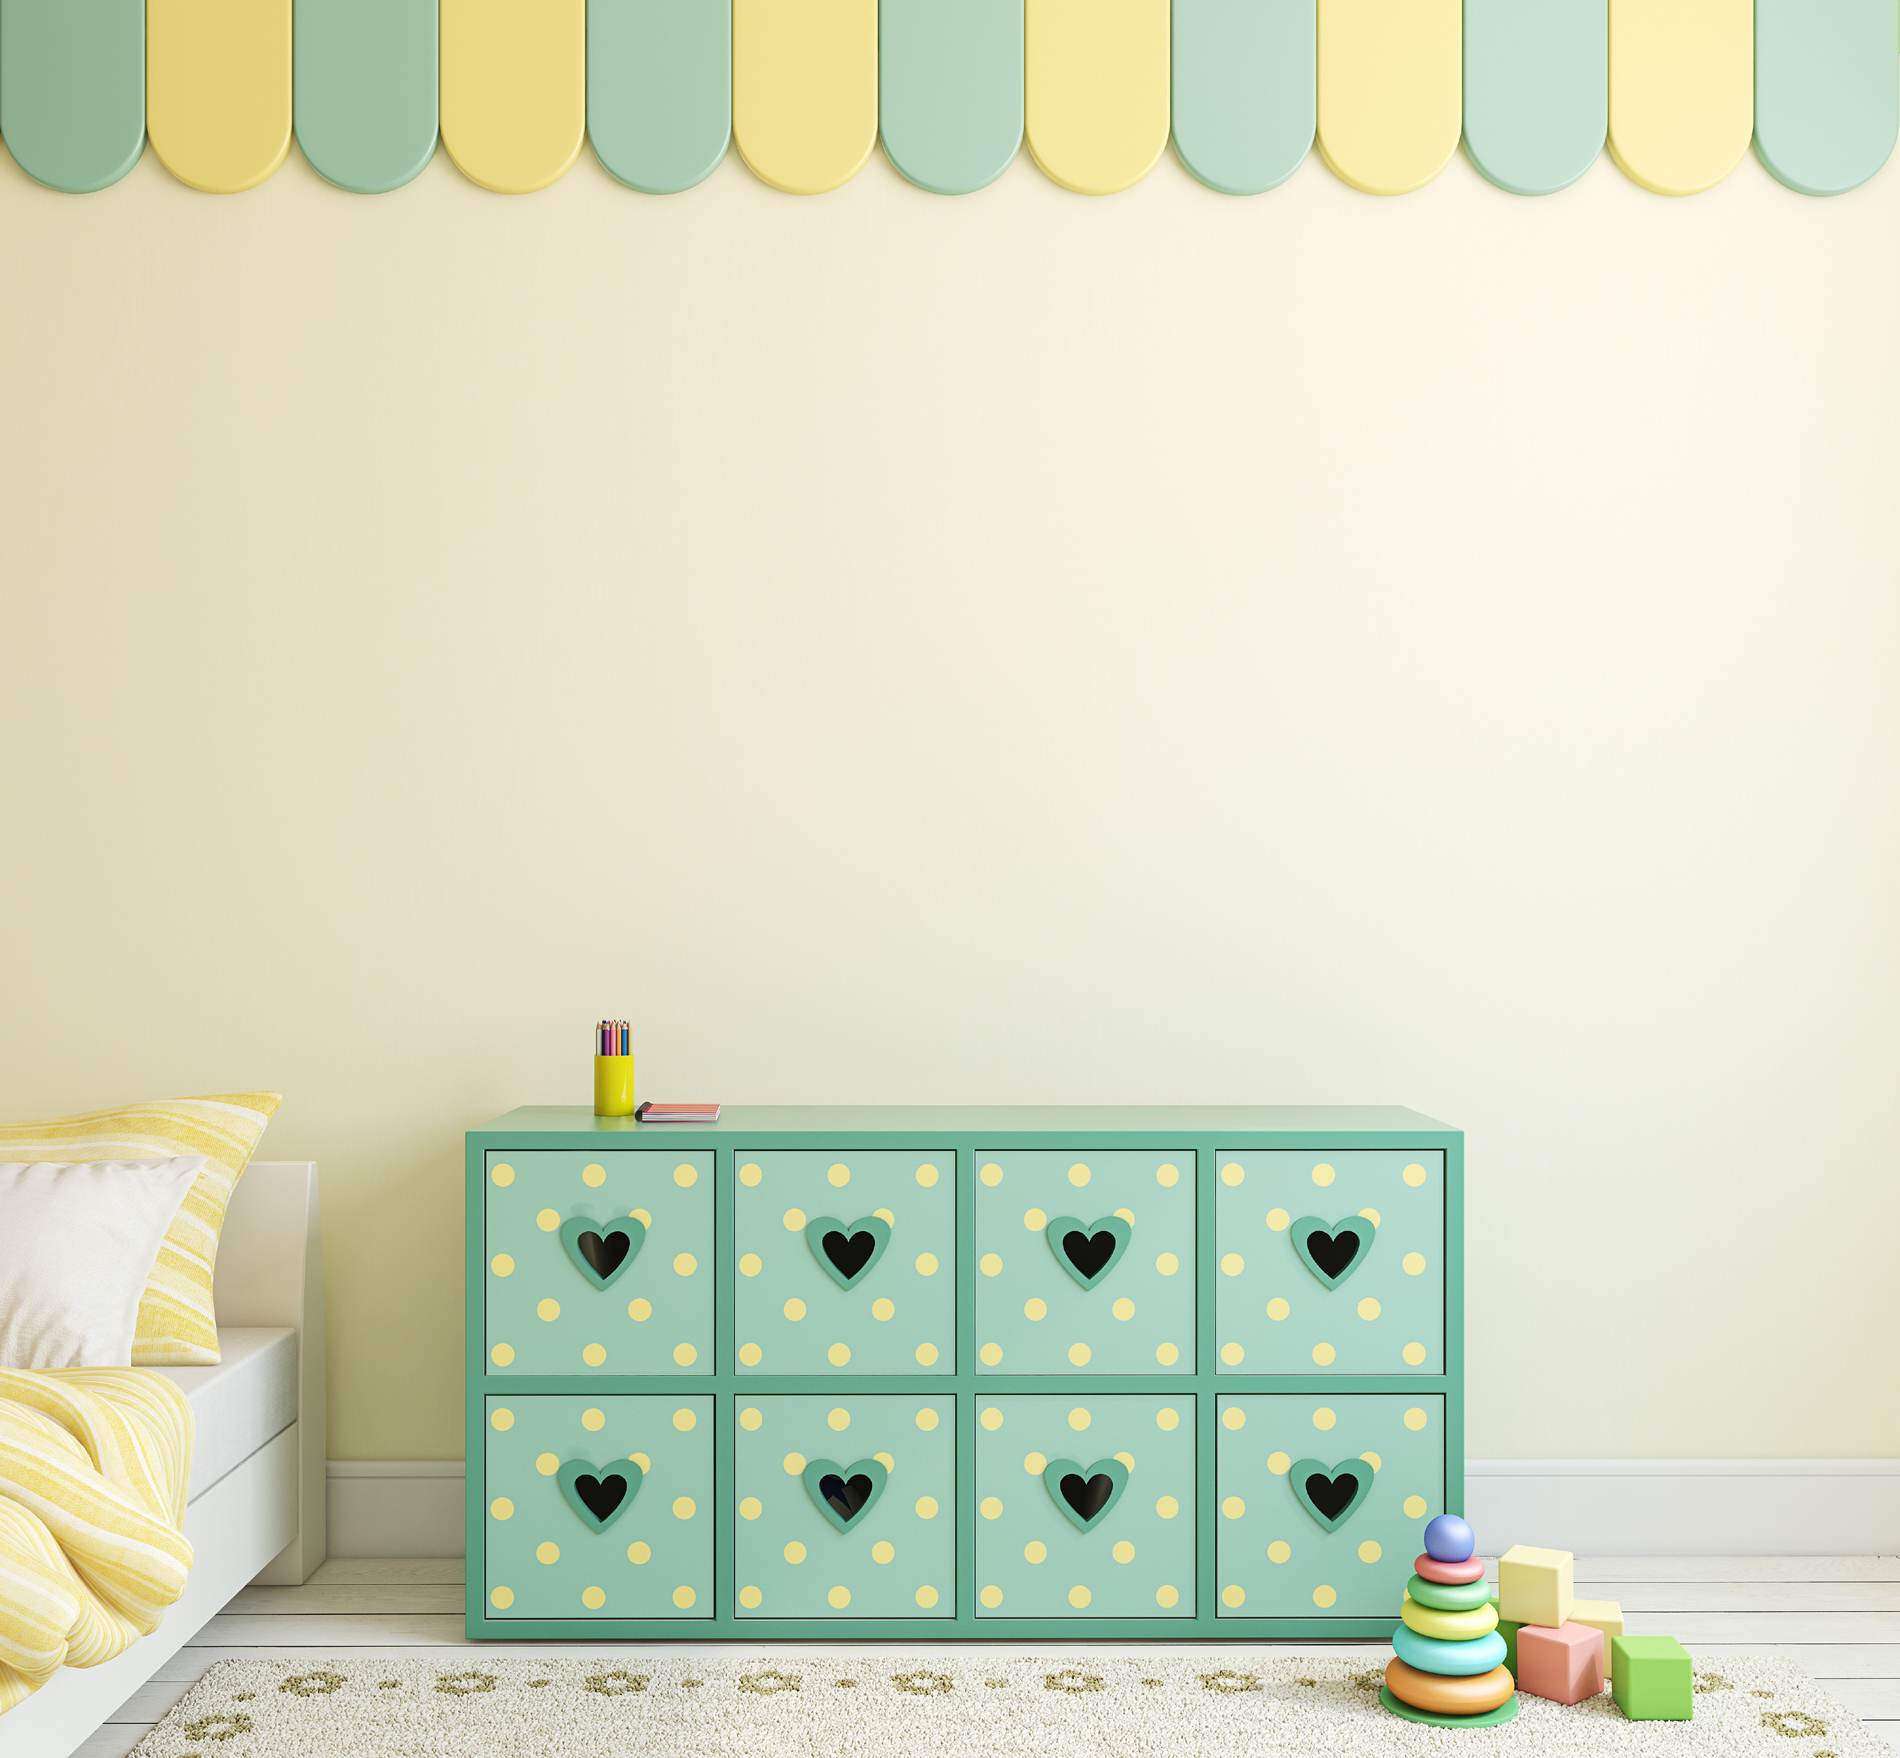 Children's rooms bedroom interior decoration 53226